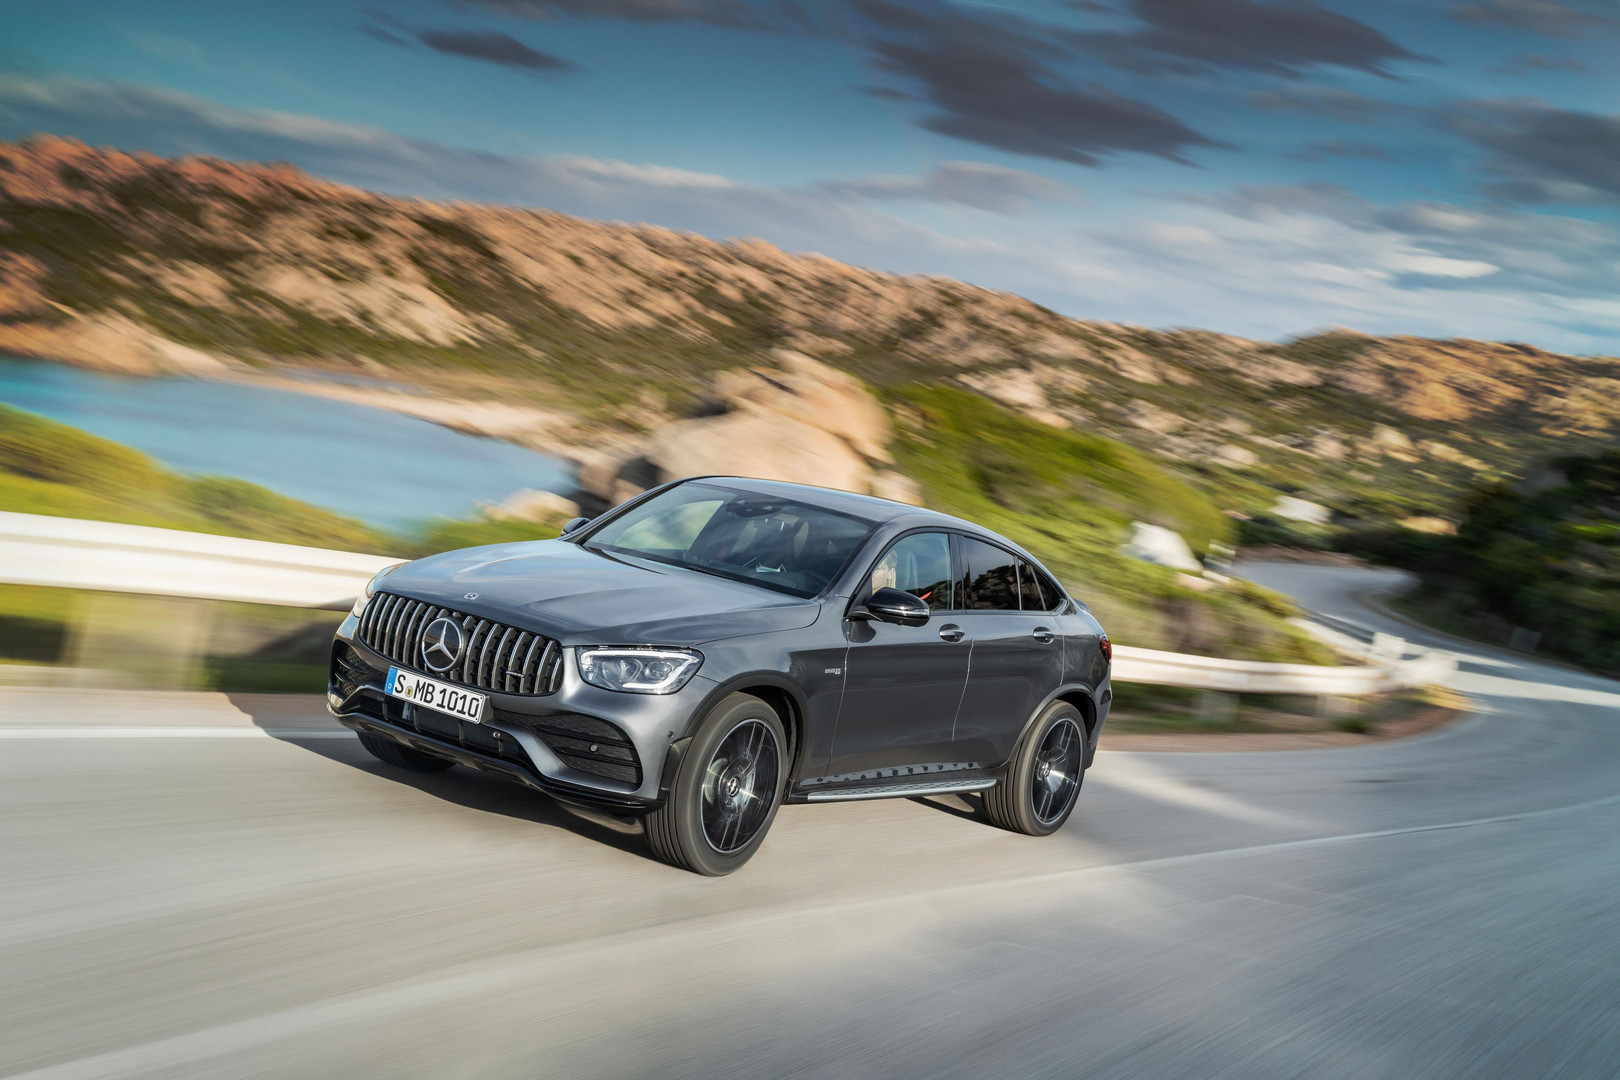 Mercedes-AMG GLC 43 Coupe Price